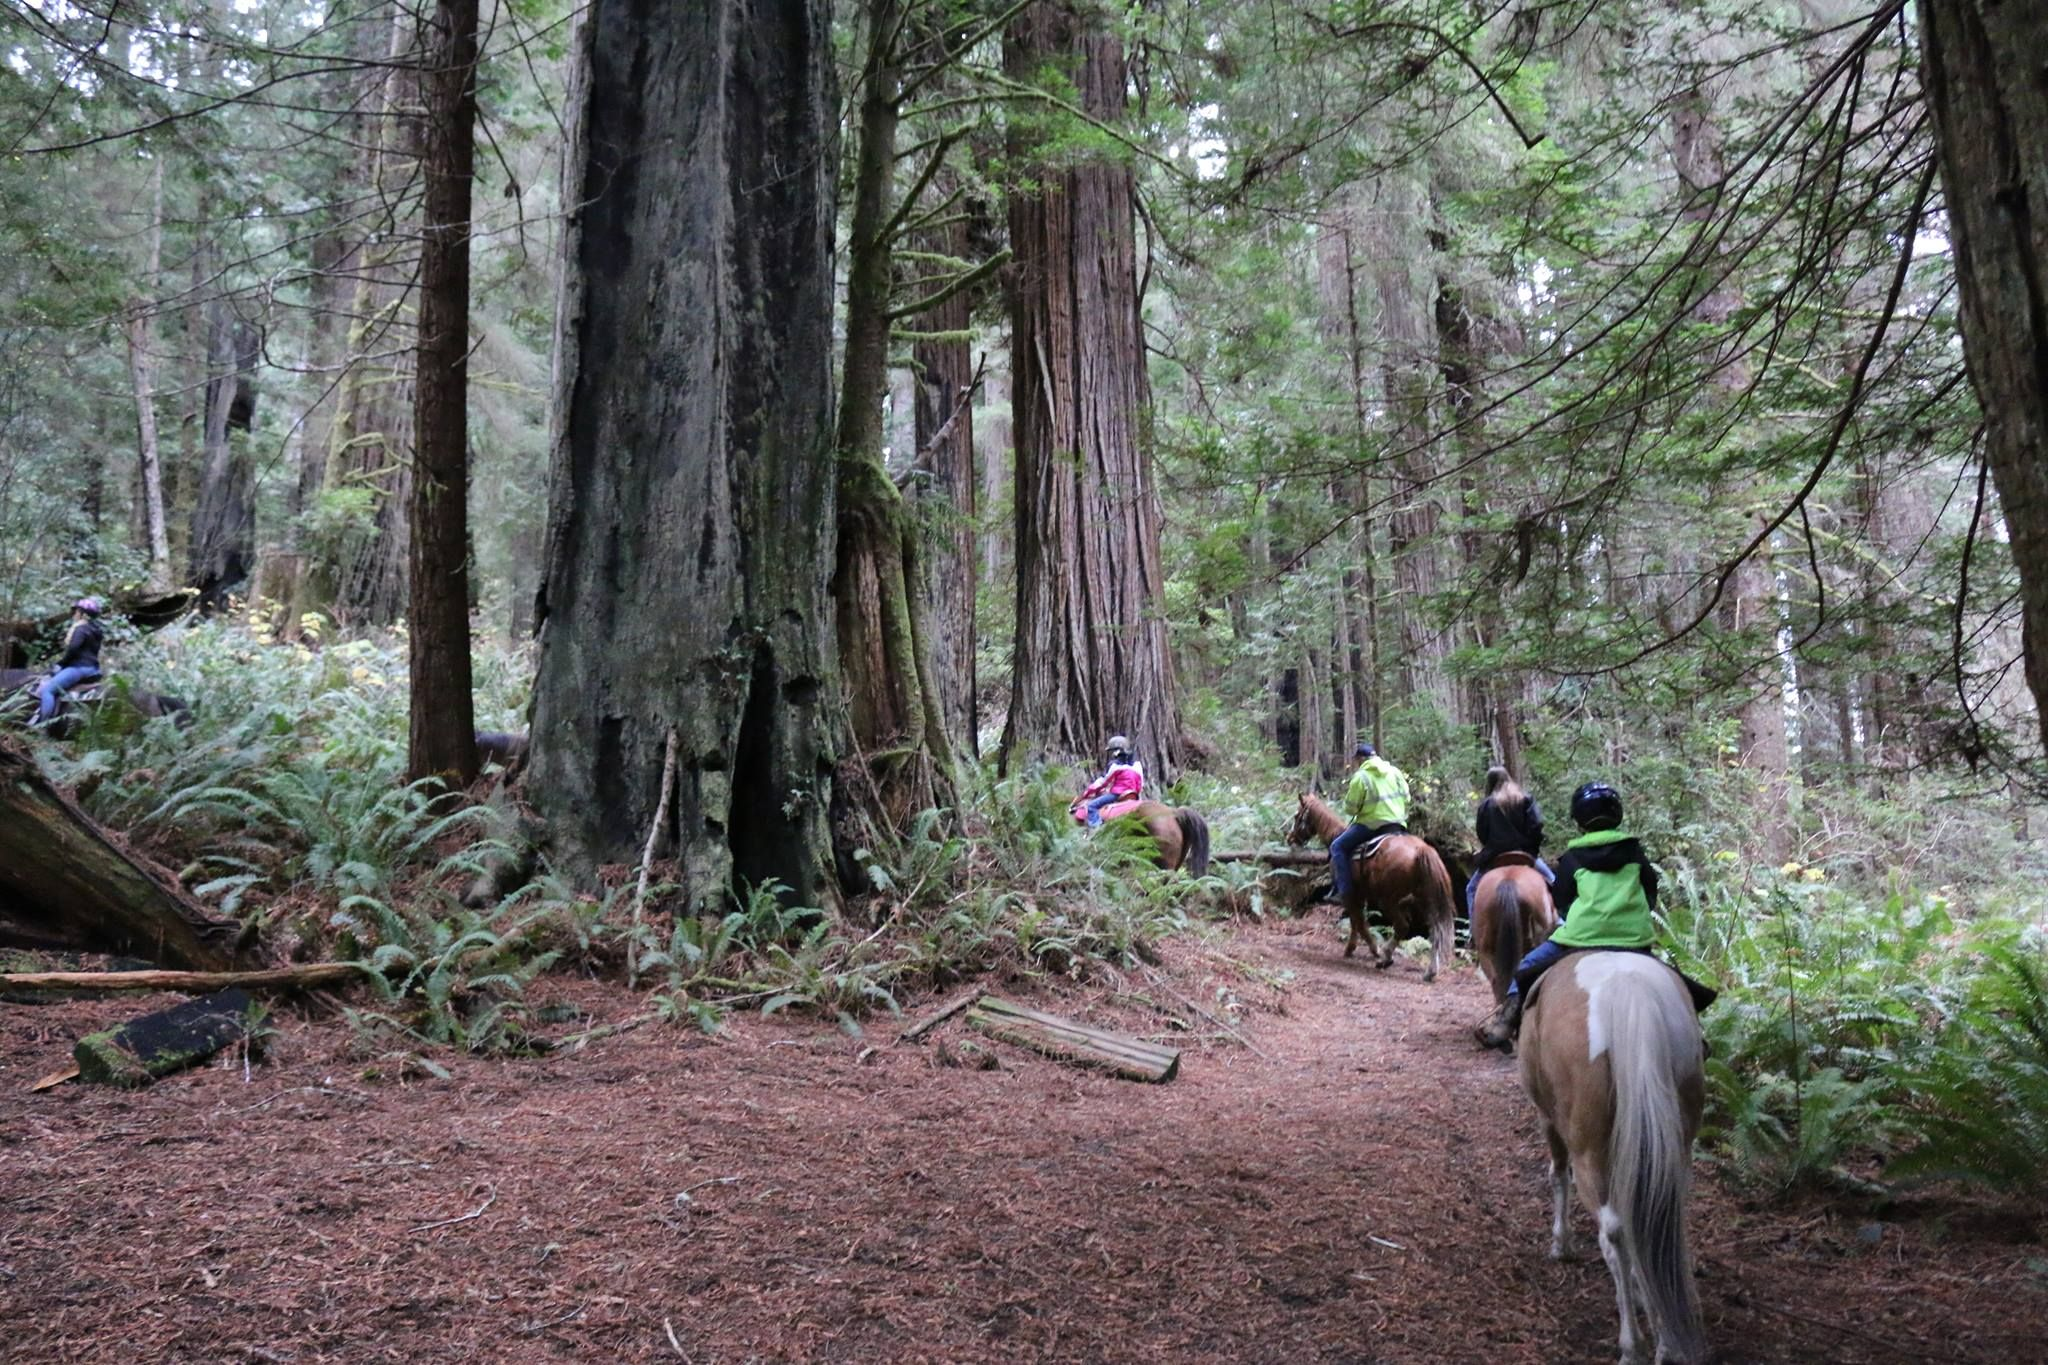 Horseback riding in Redwood Creek